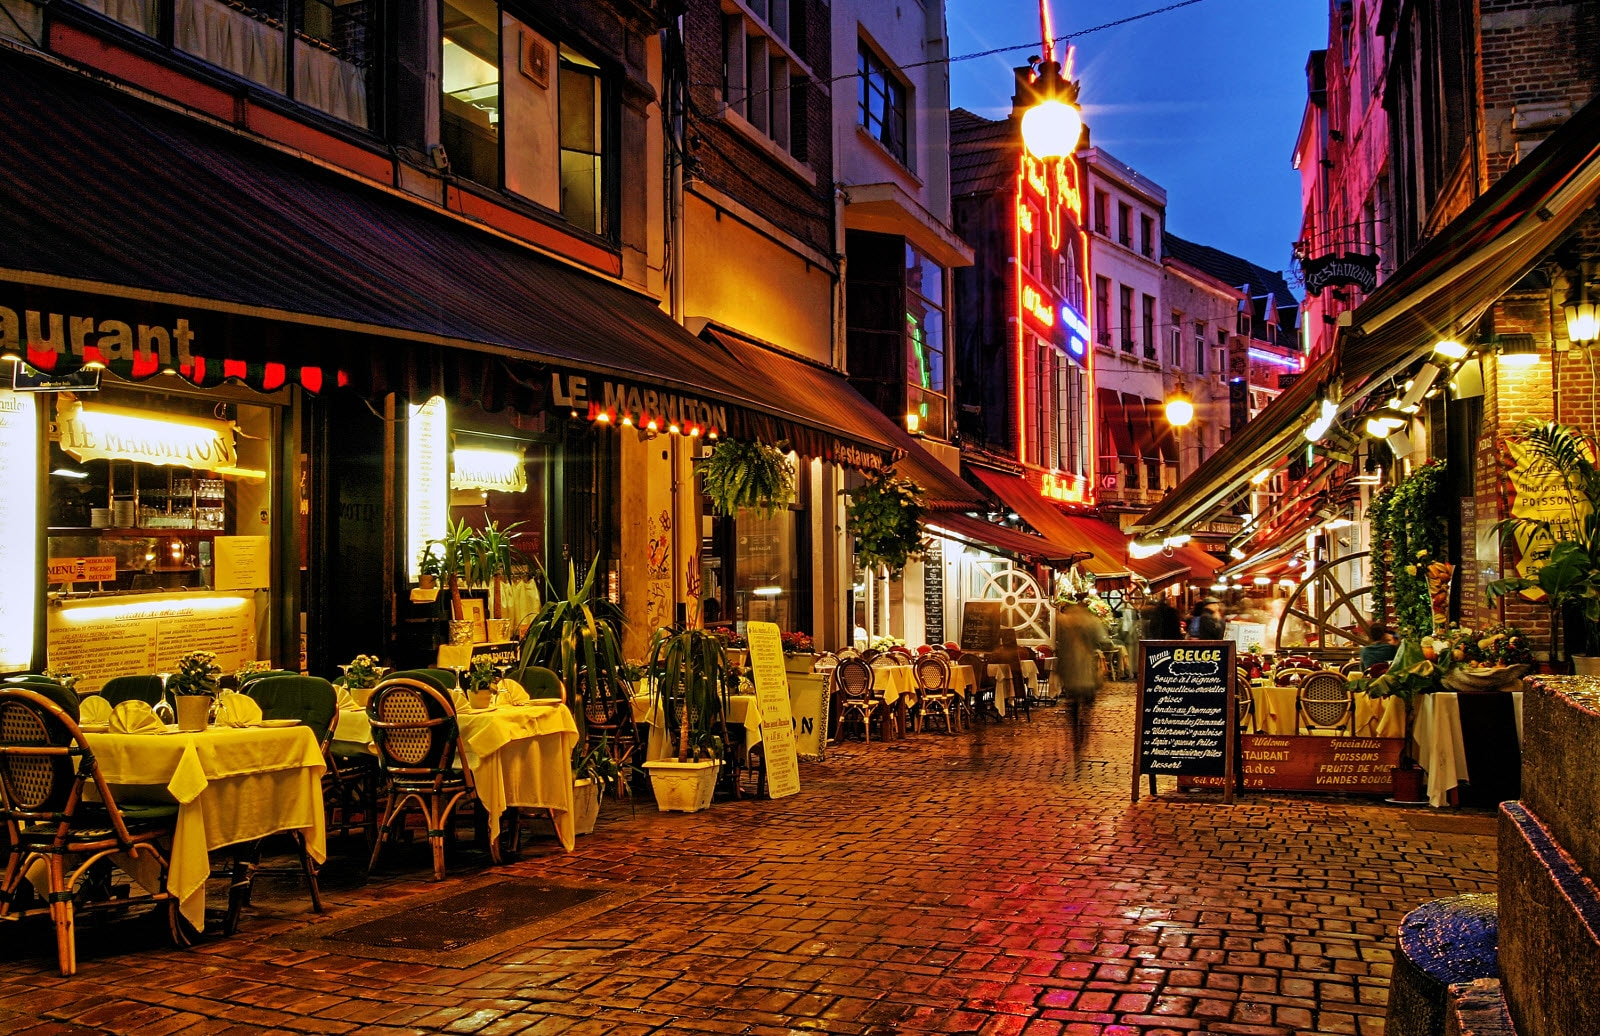 Streets in the night, restaurants, Brussels